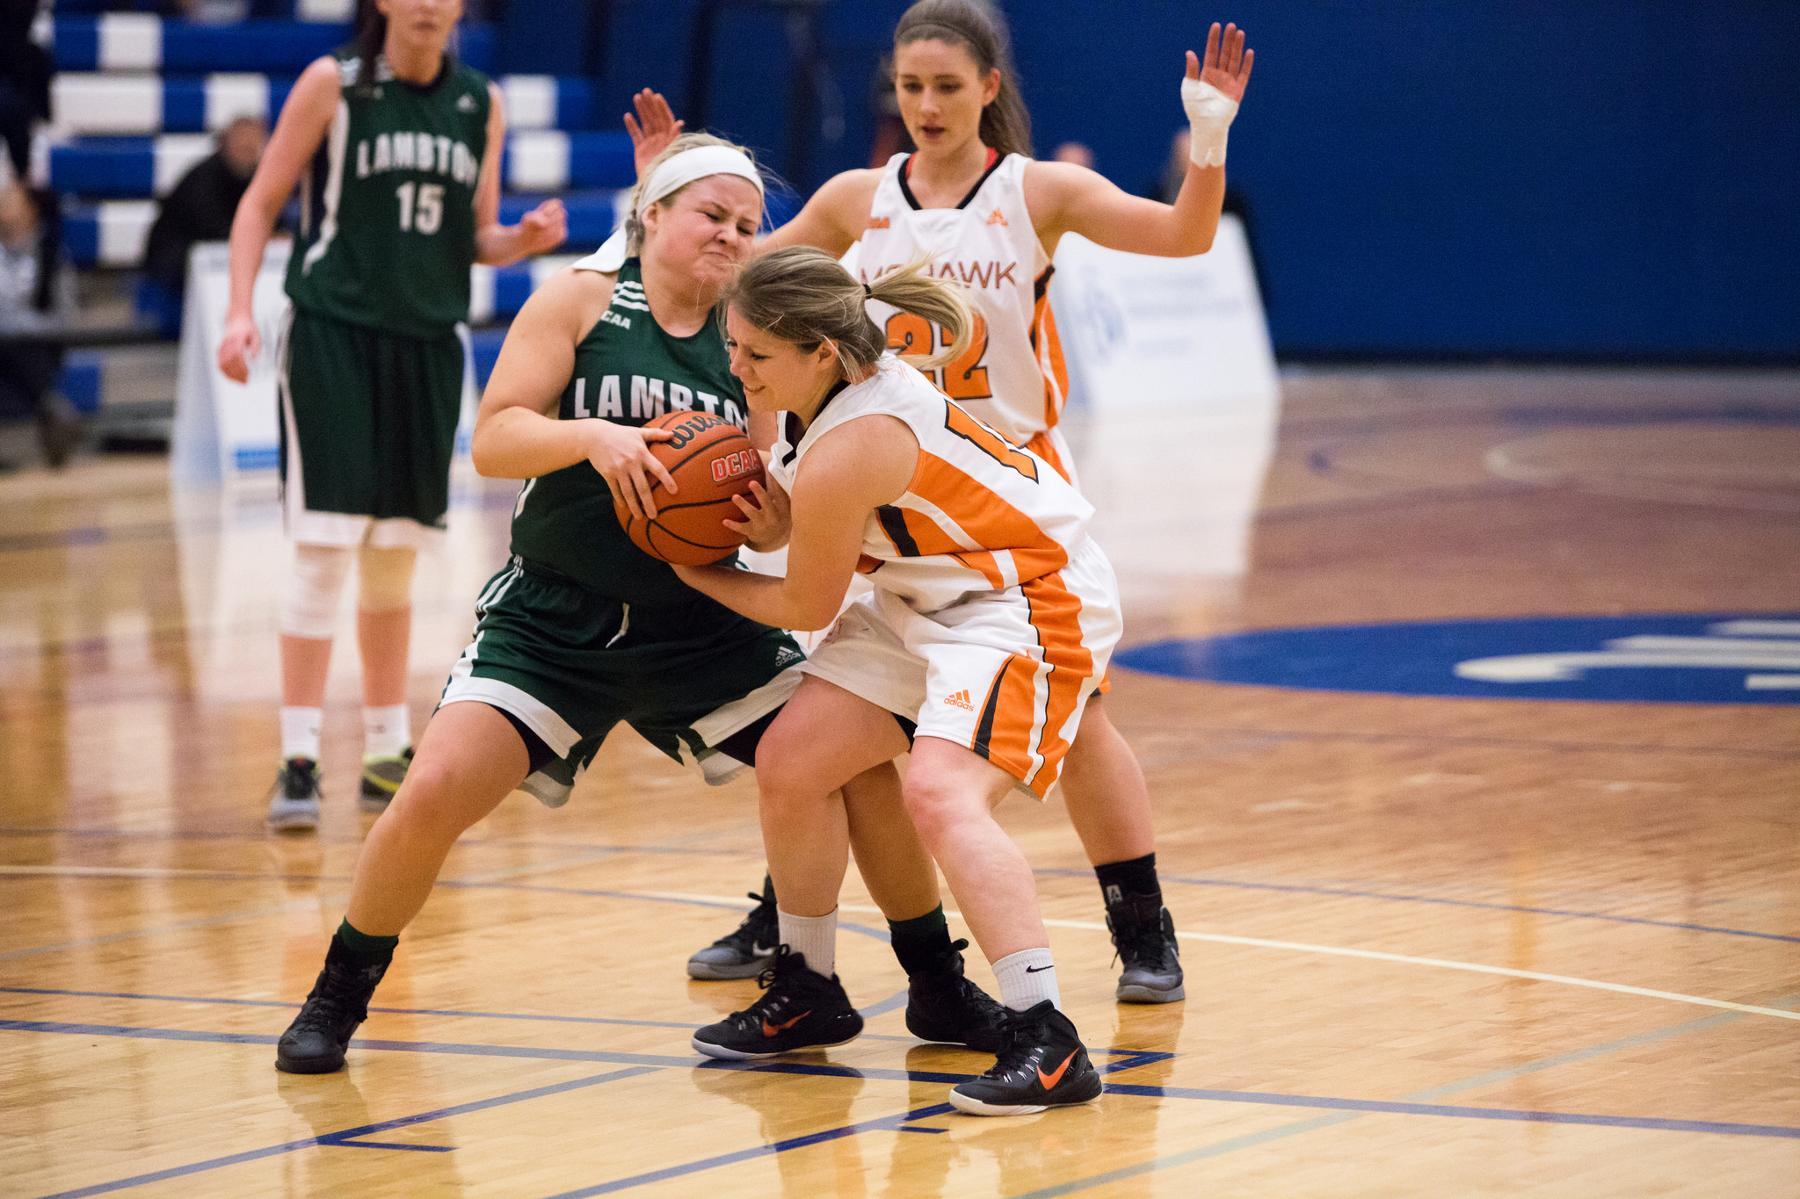 PHOTOS: Game 4 - Mohawk Mountaineers vs. Lambton Lions